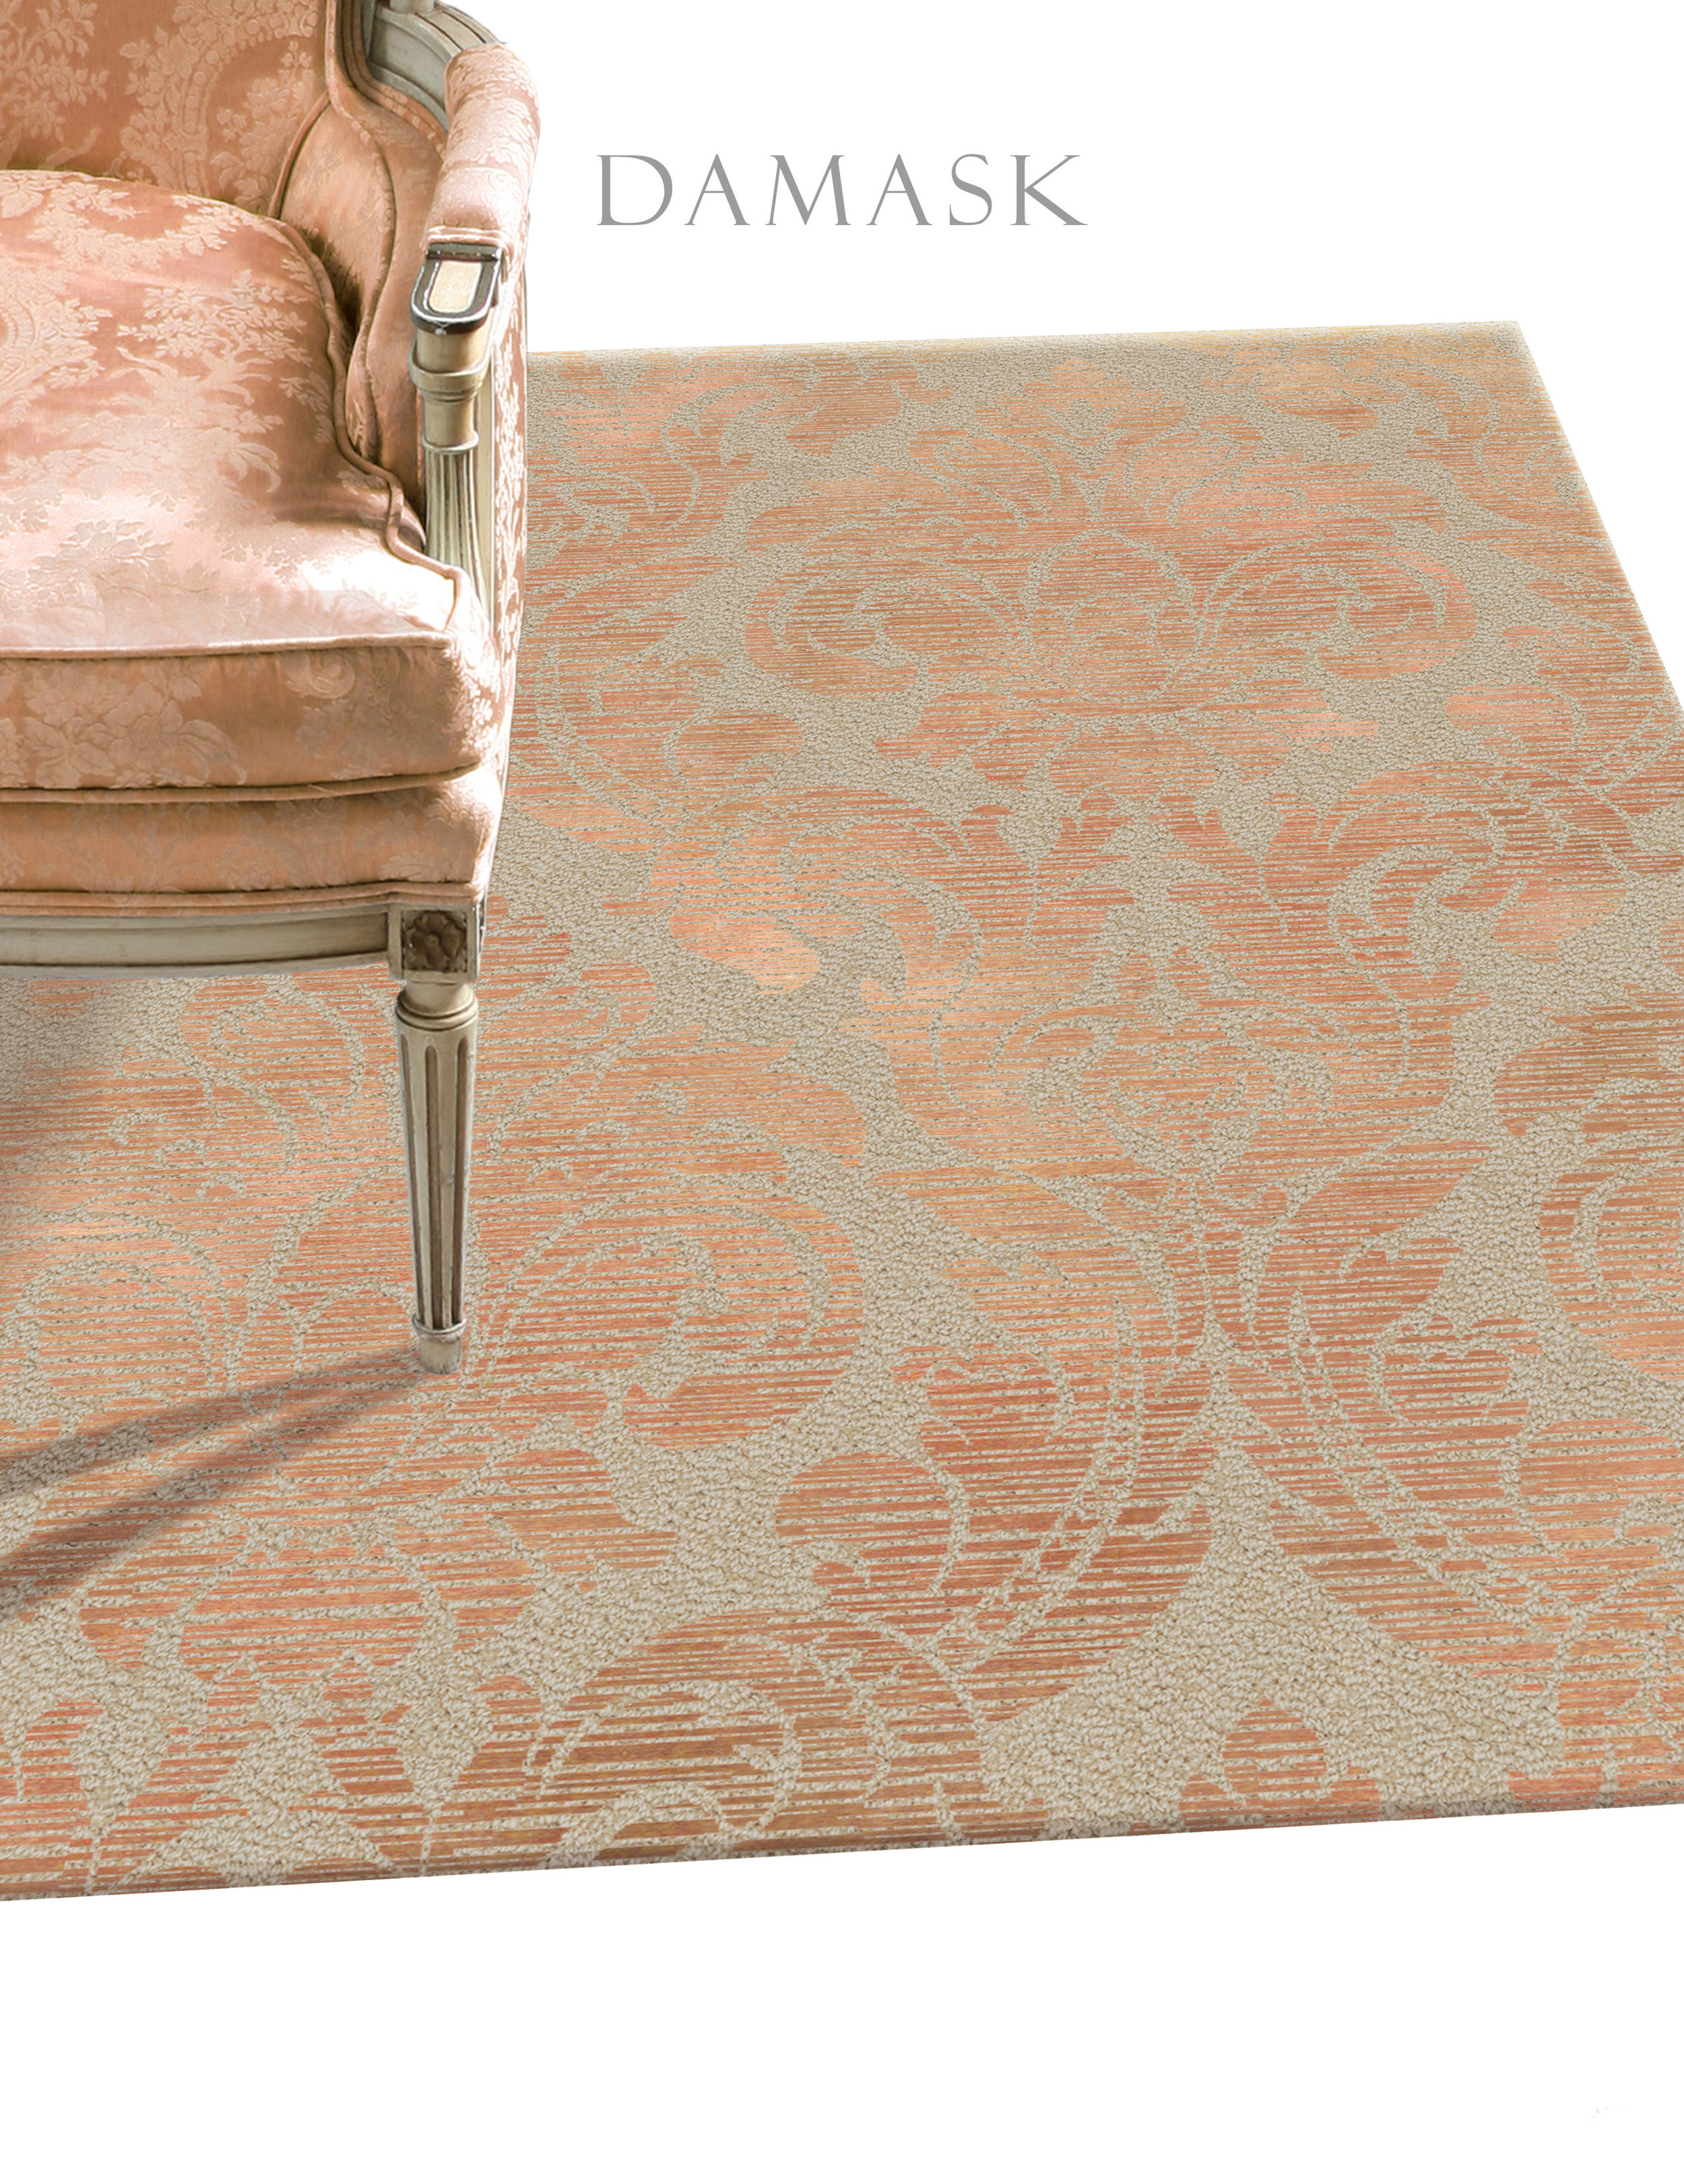 303-Damask front cover.jpg